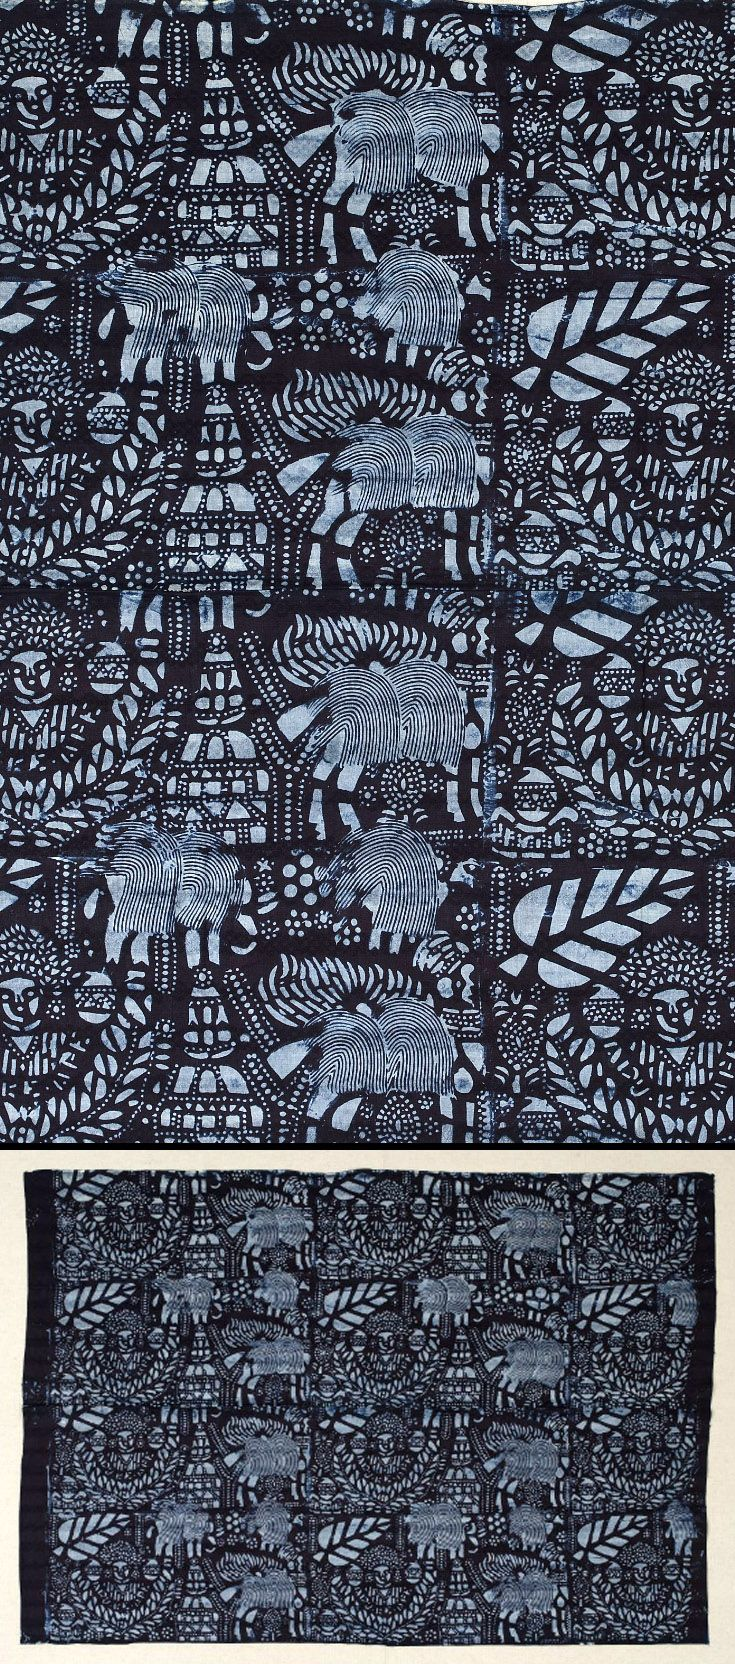 57 Best Images About Adire On Pinterest Textile Art Cotton And Wax